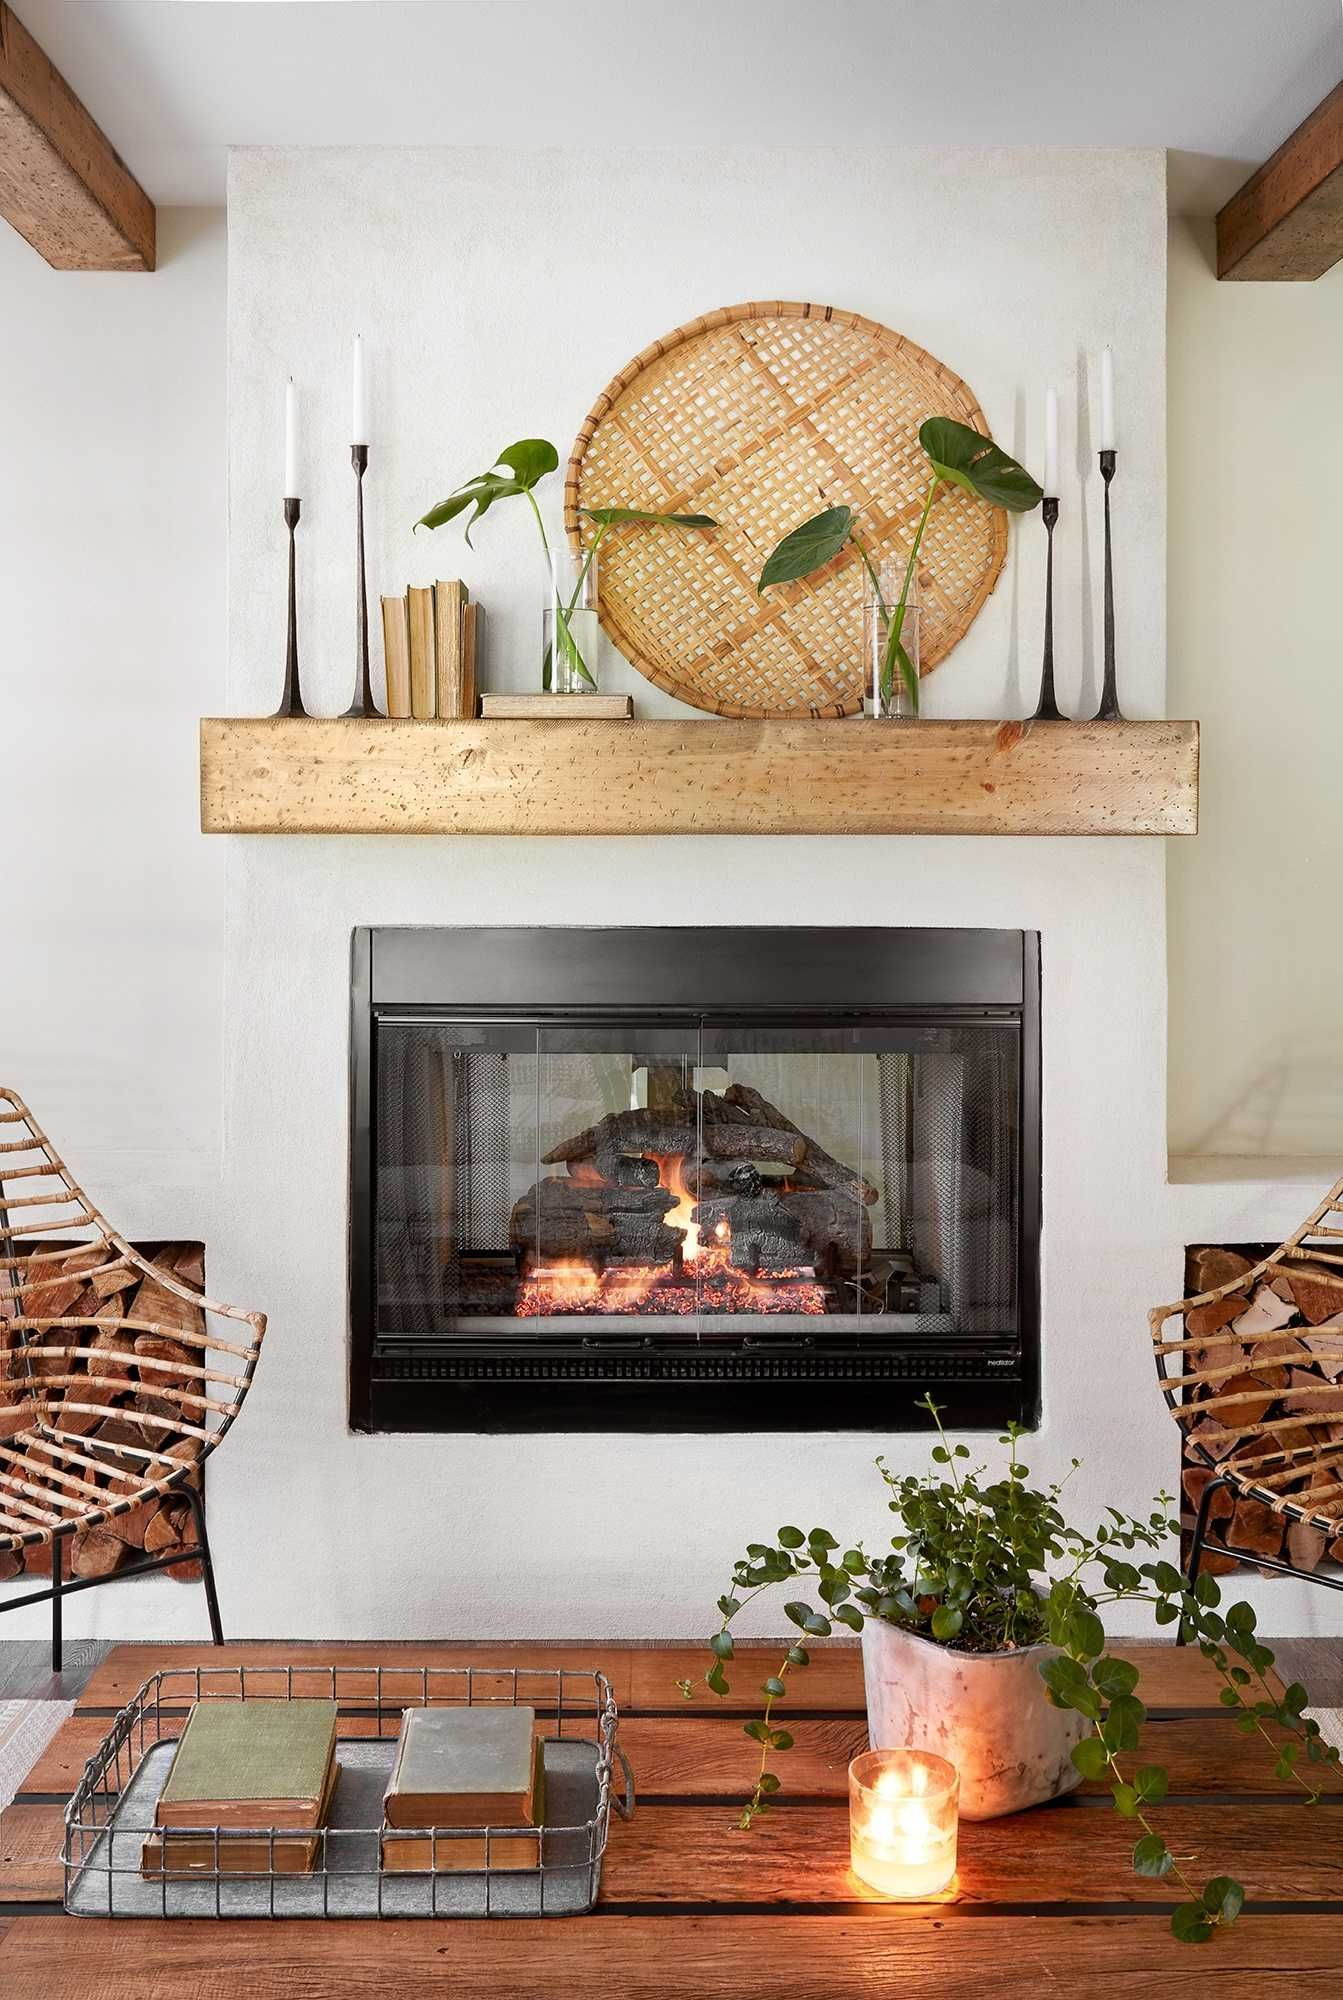 Excellent options for DIY Fireplace Designs #newhouseoptions